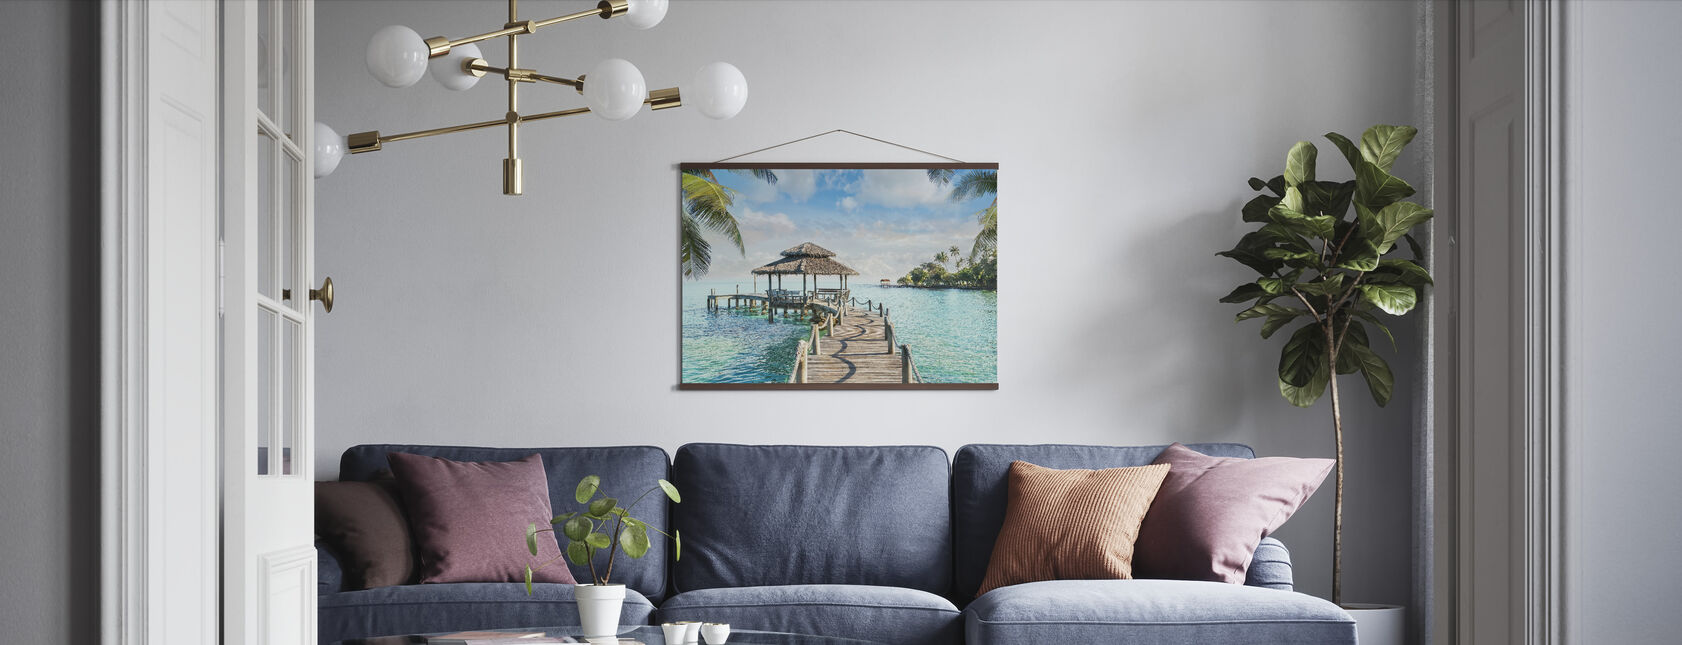 Bungalow on Pier - Poster - Living Room